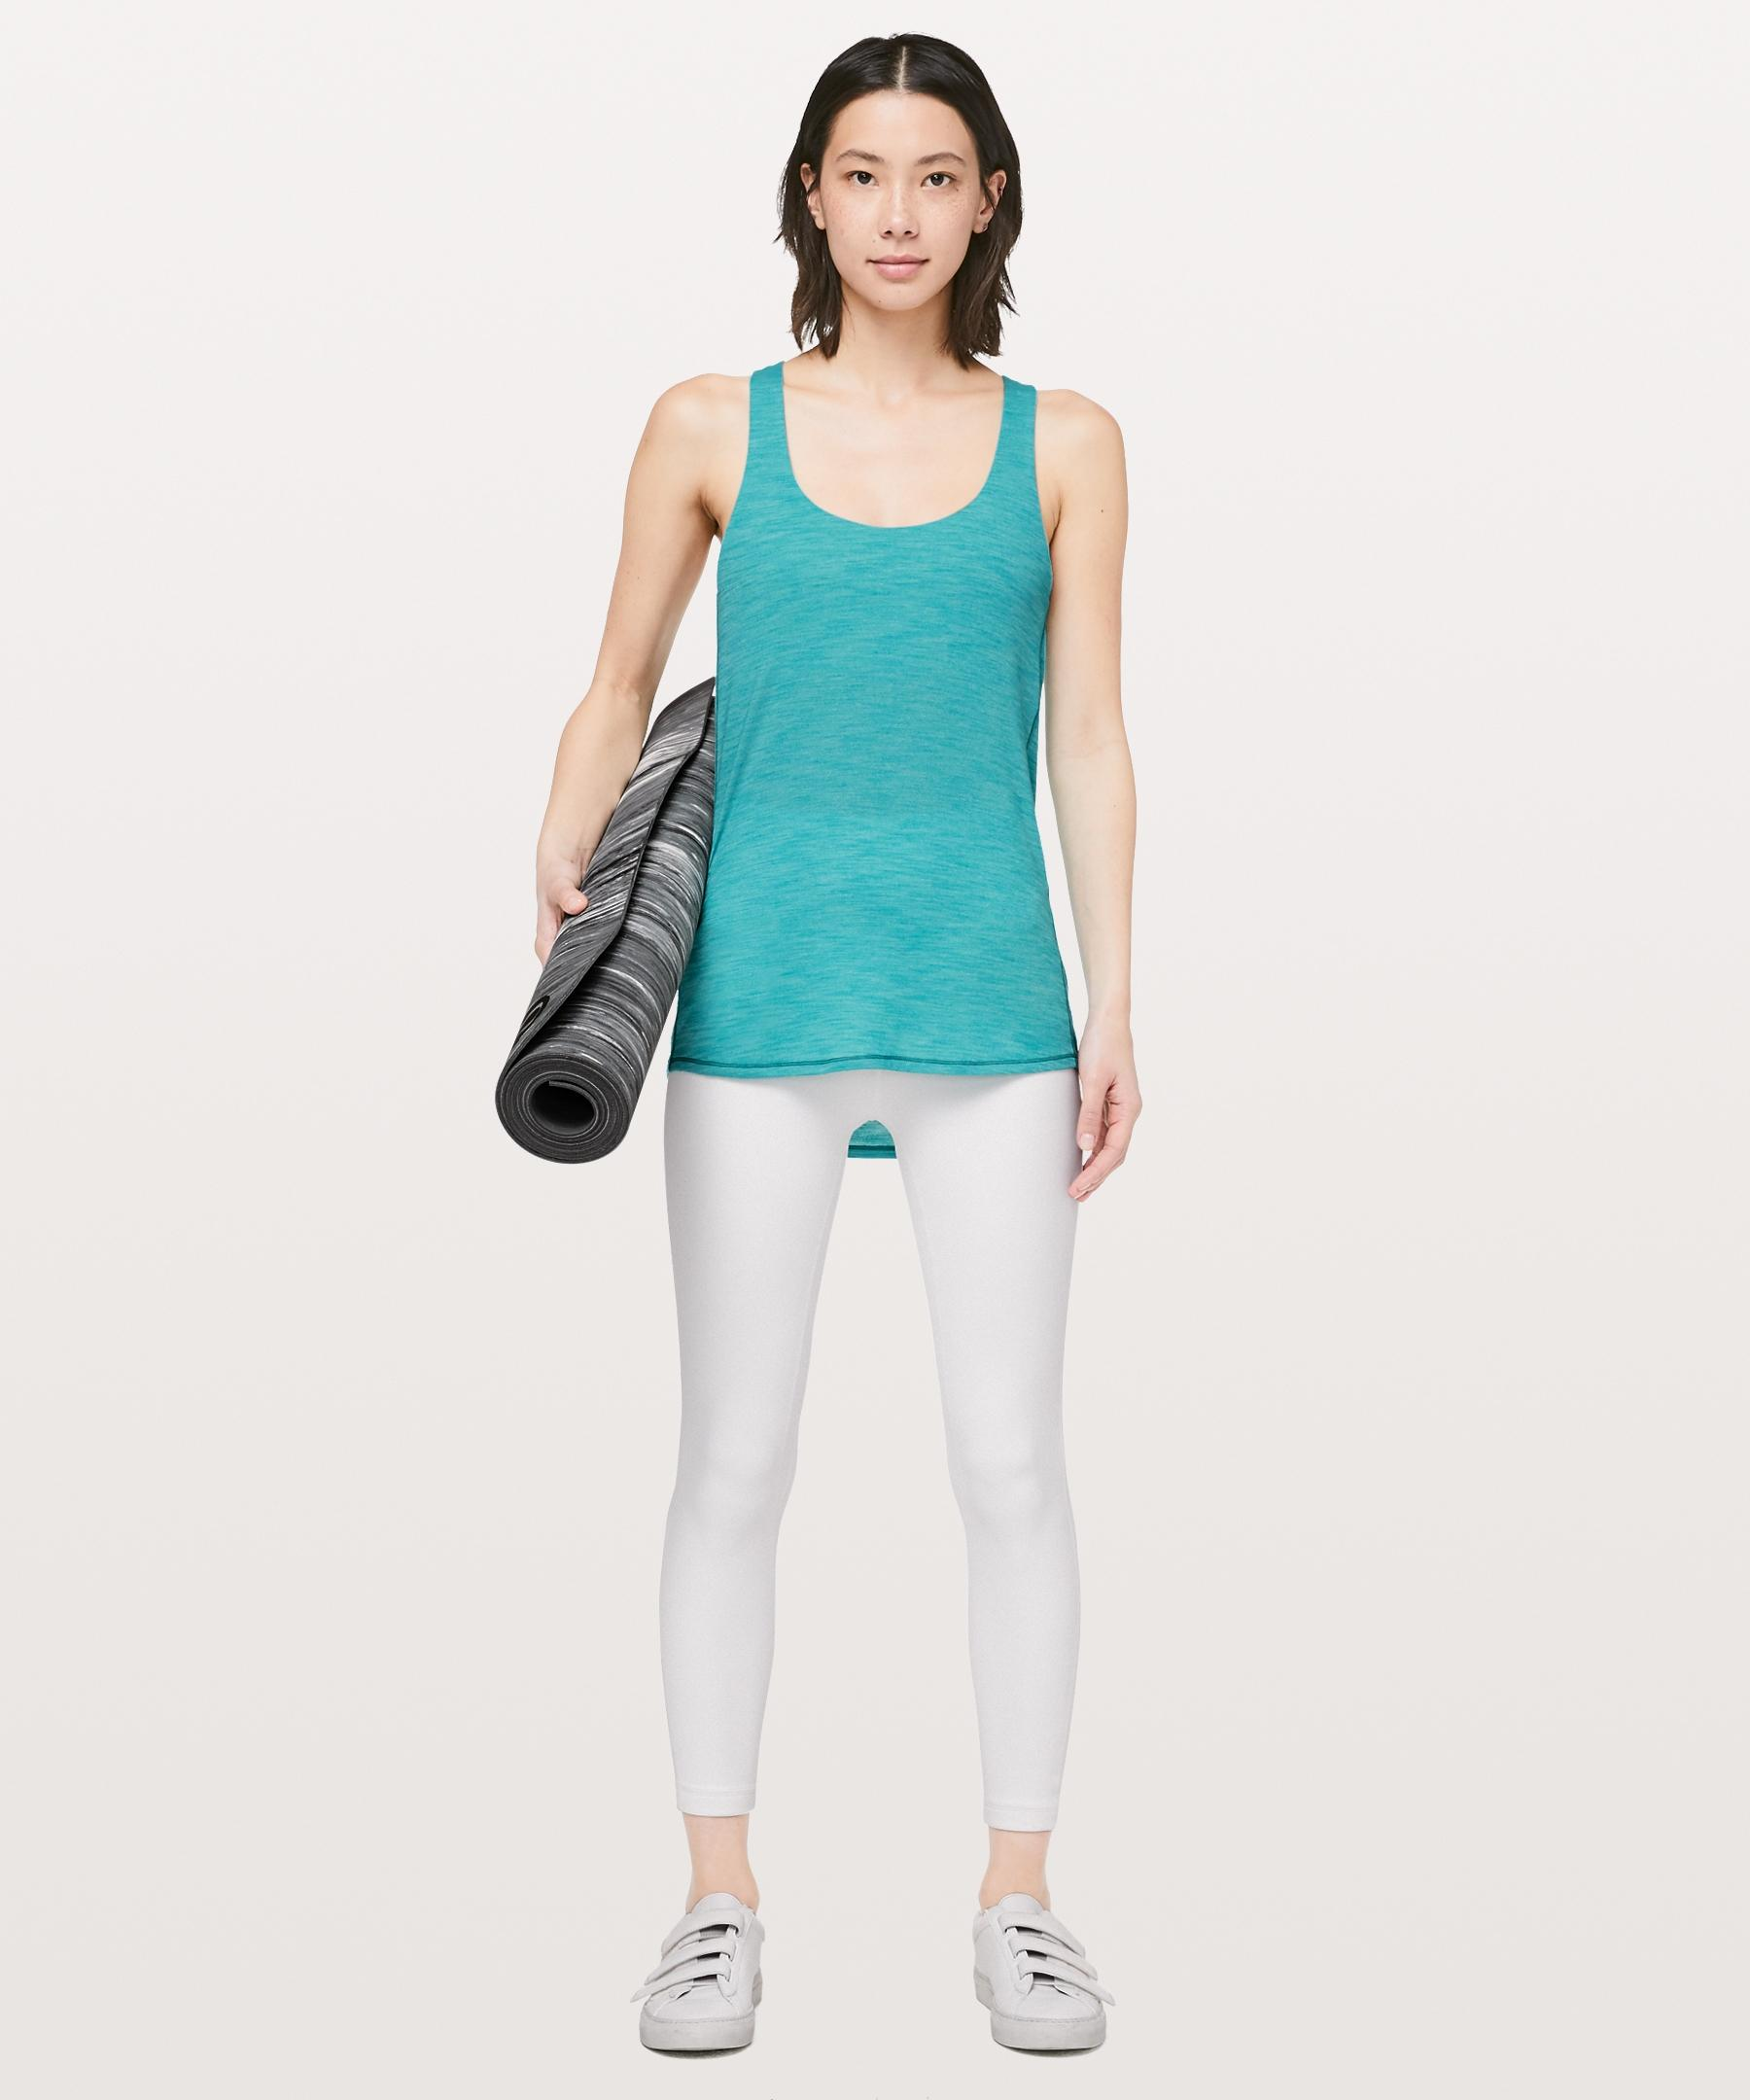 0879bcfc702 lululemon athletica Slay The Studio 2-in-1 Tank  medium Support B c Cup in  Blue - Save 43% - Lyst